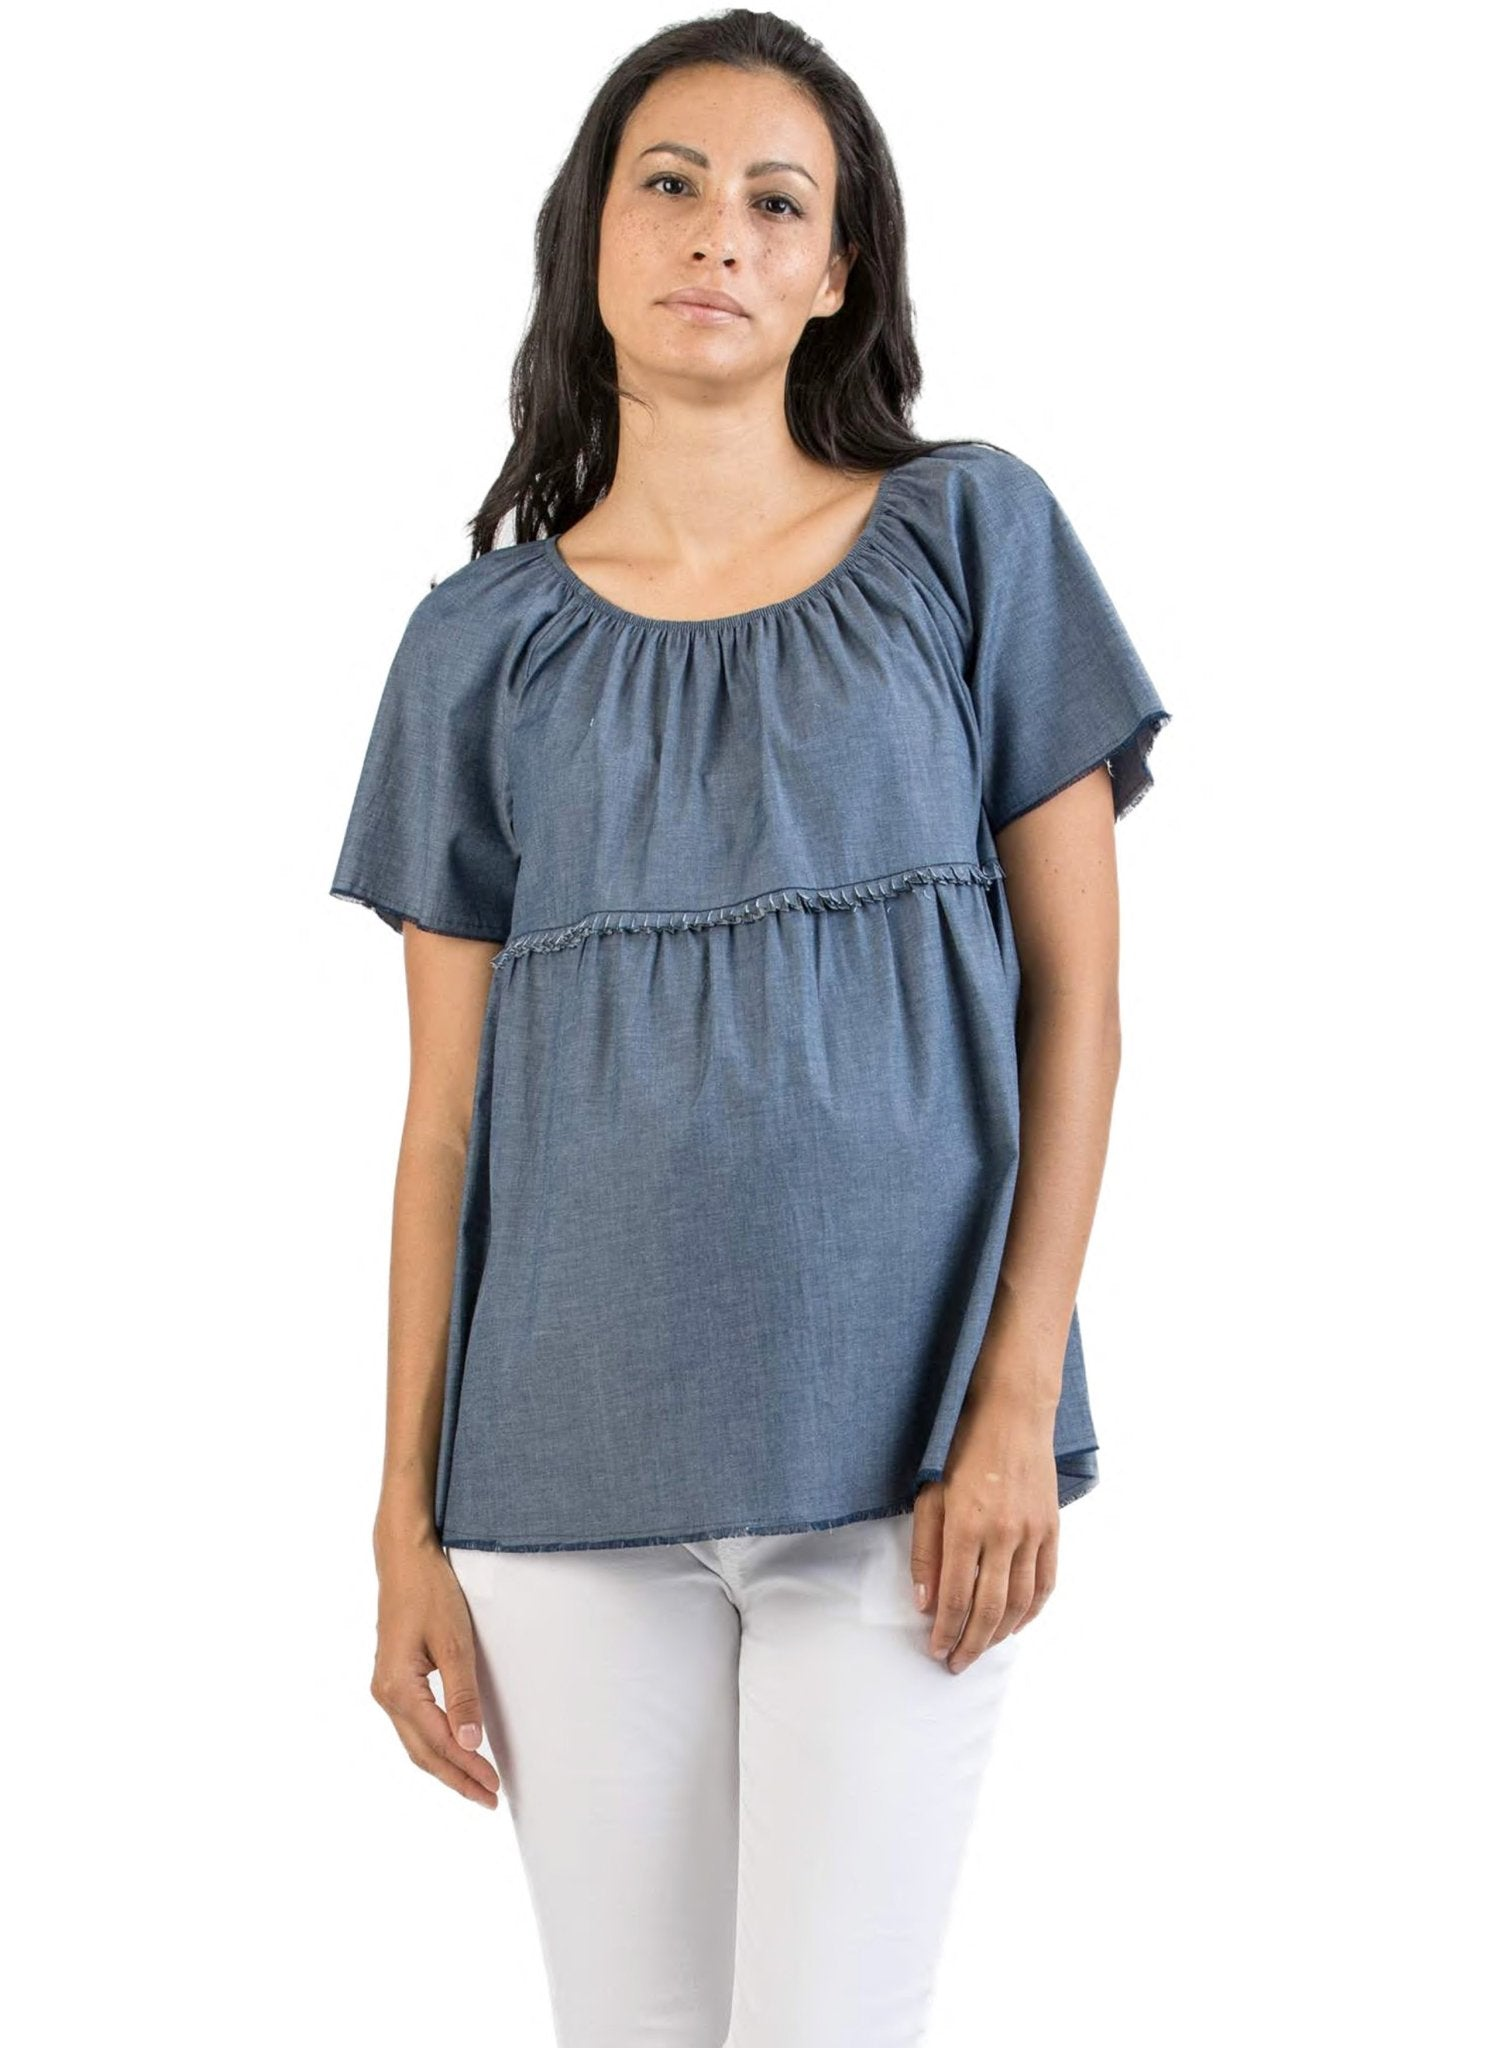 Denim Maternity Top - Mums and Bumps